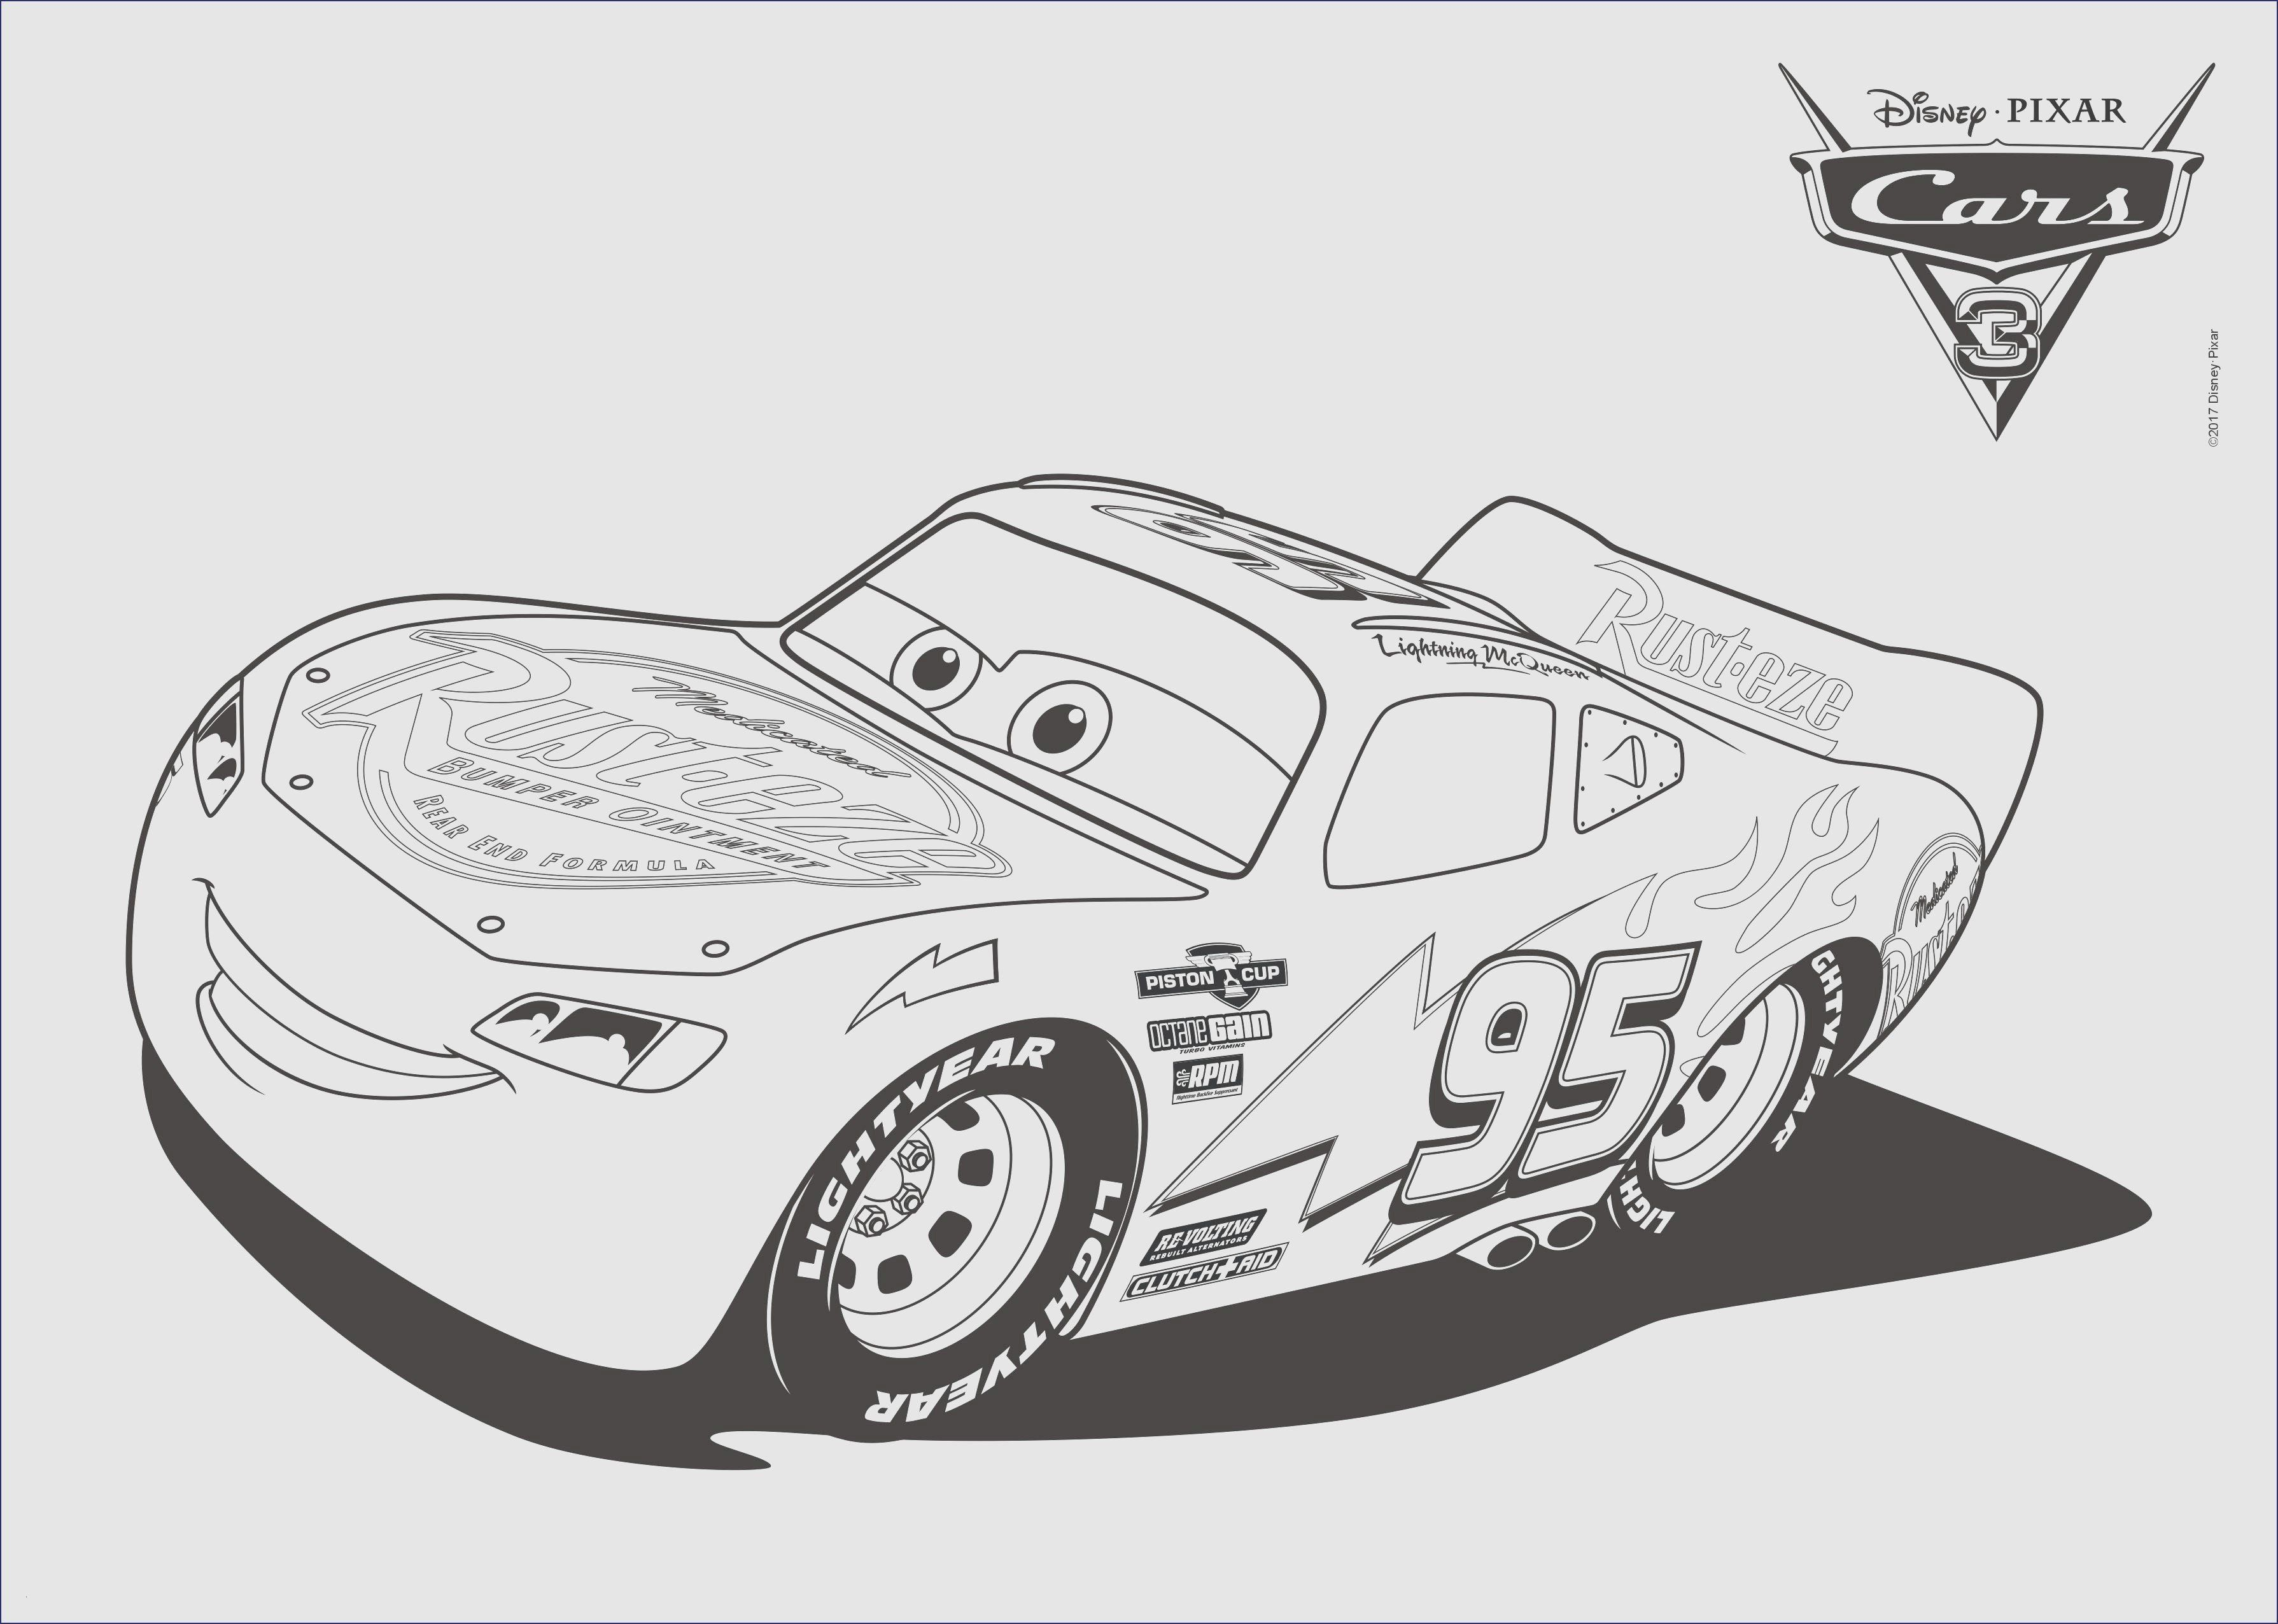 Lightning Mcqueen Coloring Pages Elegant Lightning Mcqueen Coloring Pages Inspirational Awesome Cars Coloring Pages Disney Coloring Pages Truck Coloring Pages